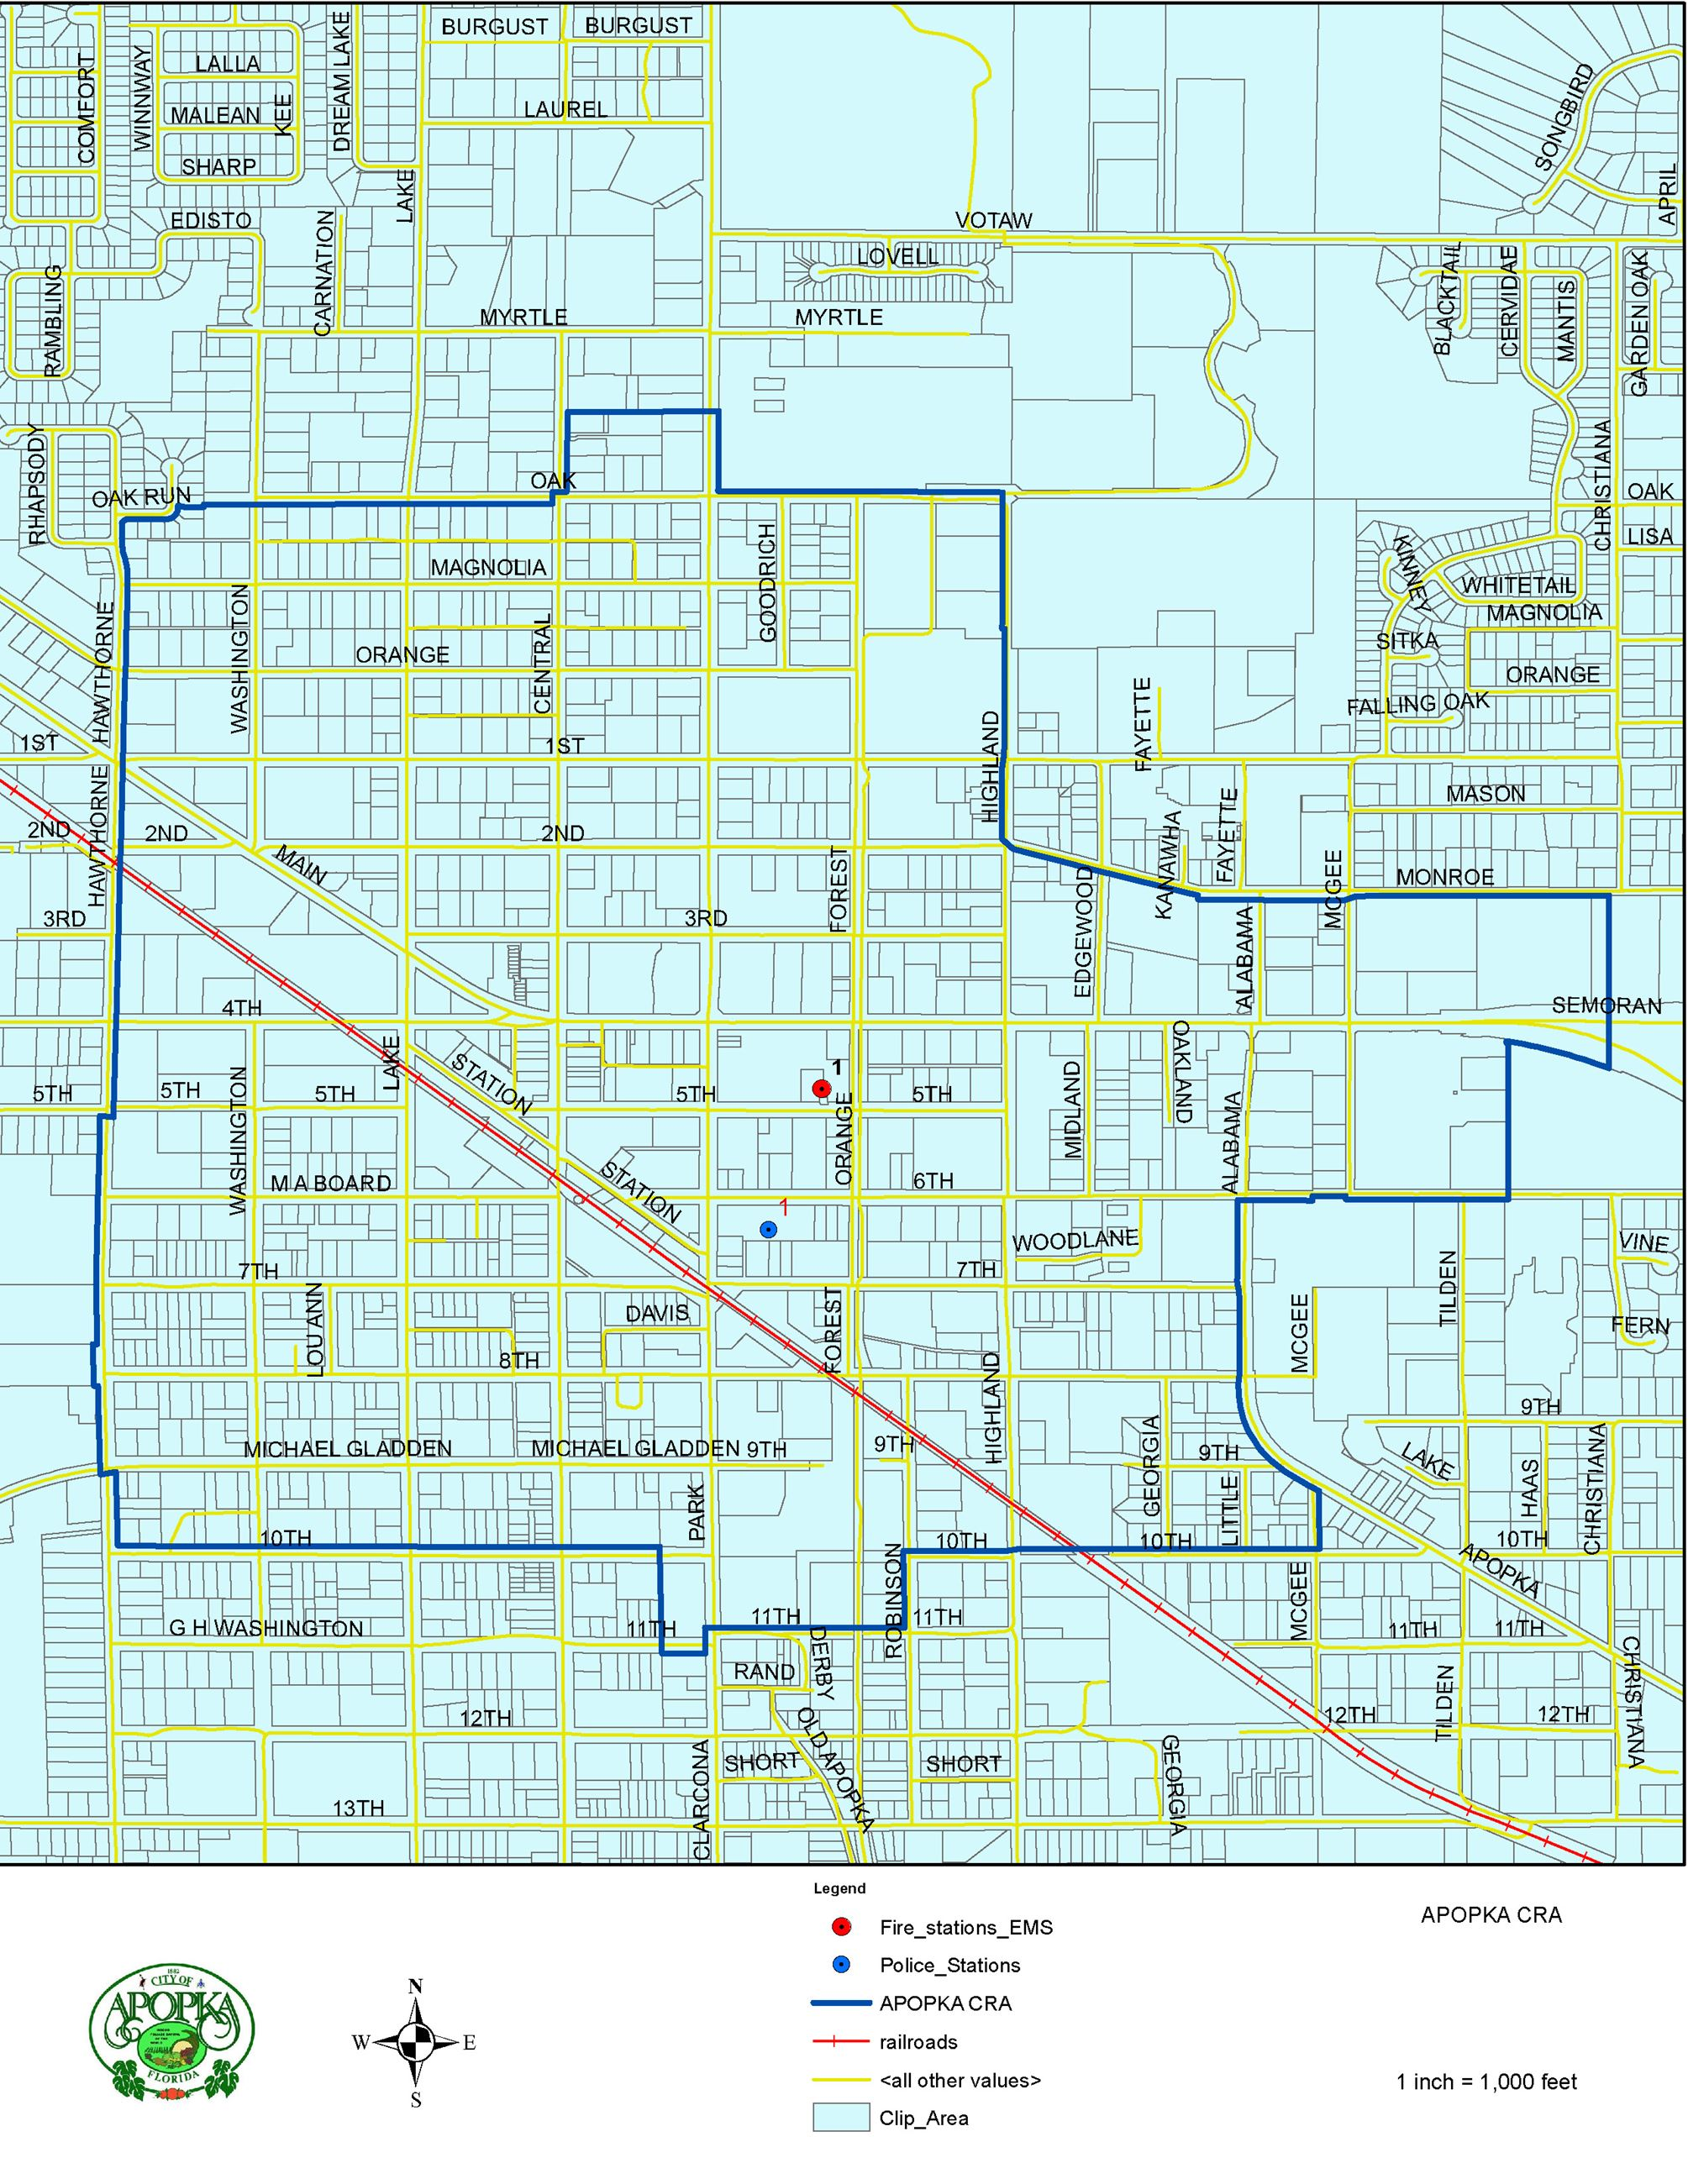 APOPKA Community Redevelopment Agency Map